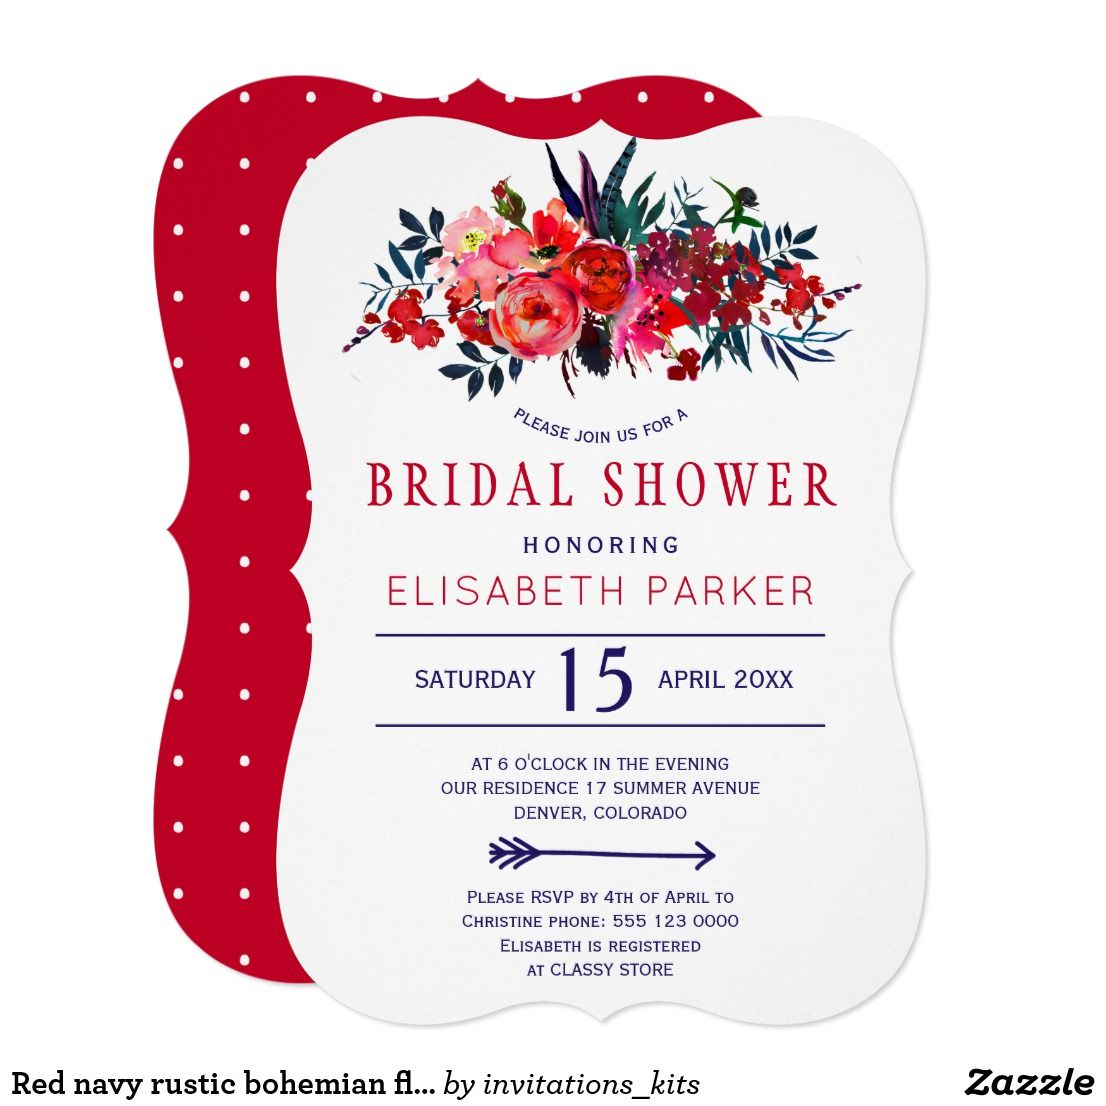 Red navy rustic bohemian floral bridal shower invitation in 2018 ...